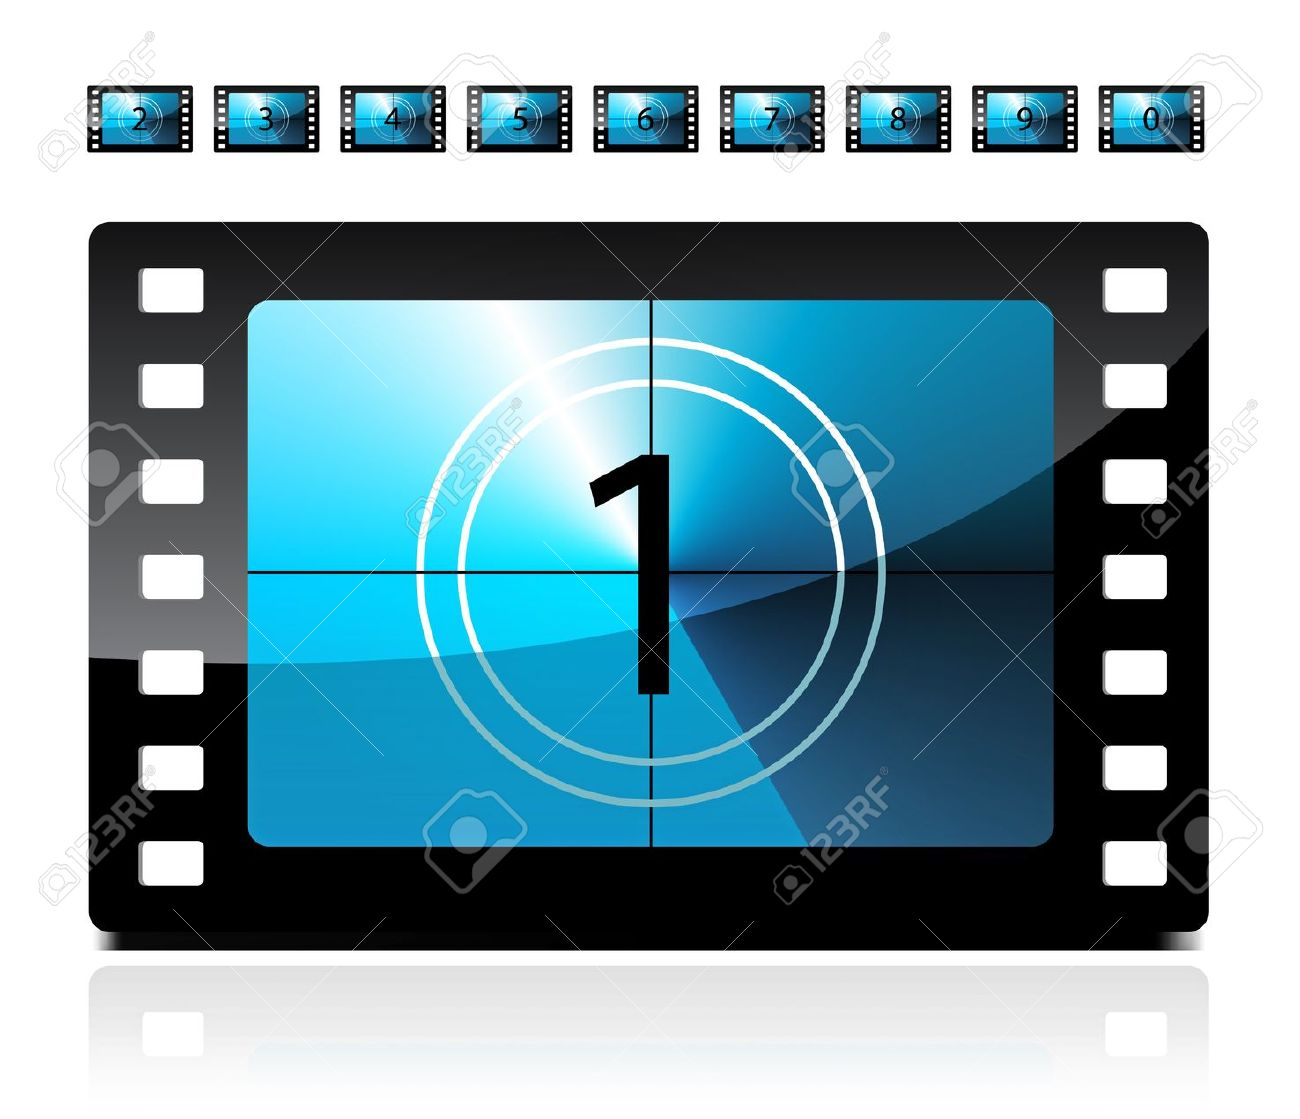 Movie countdown clip art banner free Animated countdown clipart - ClipartFest banner free